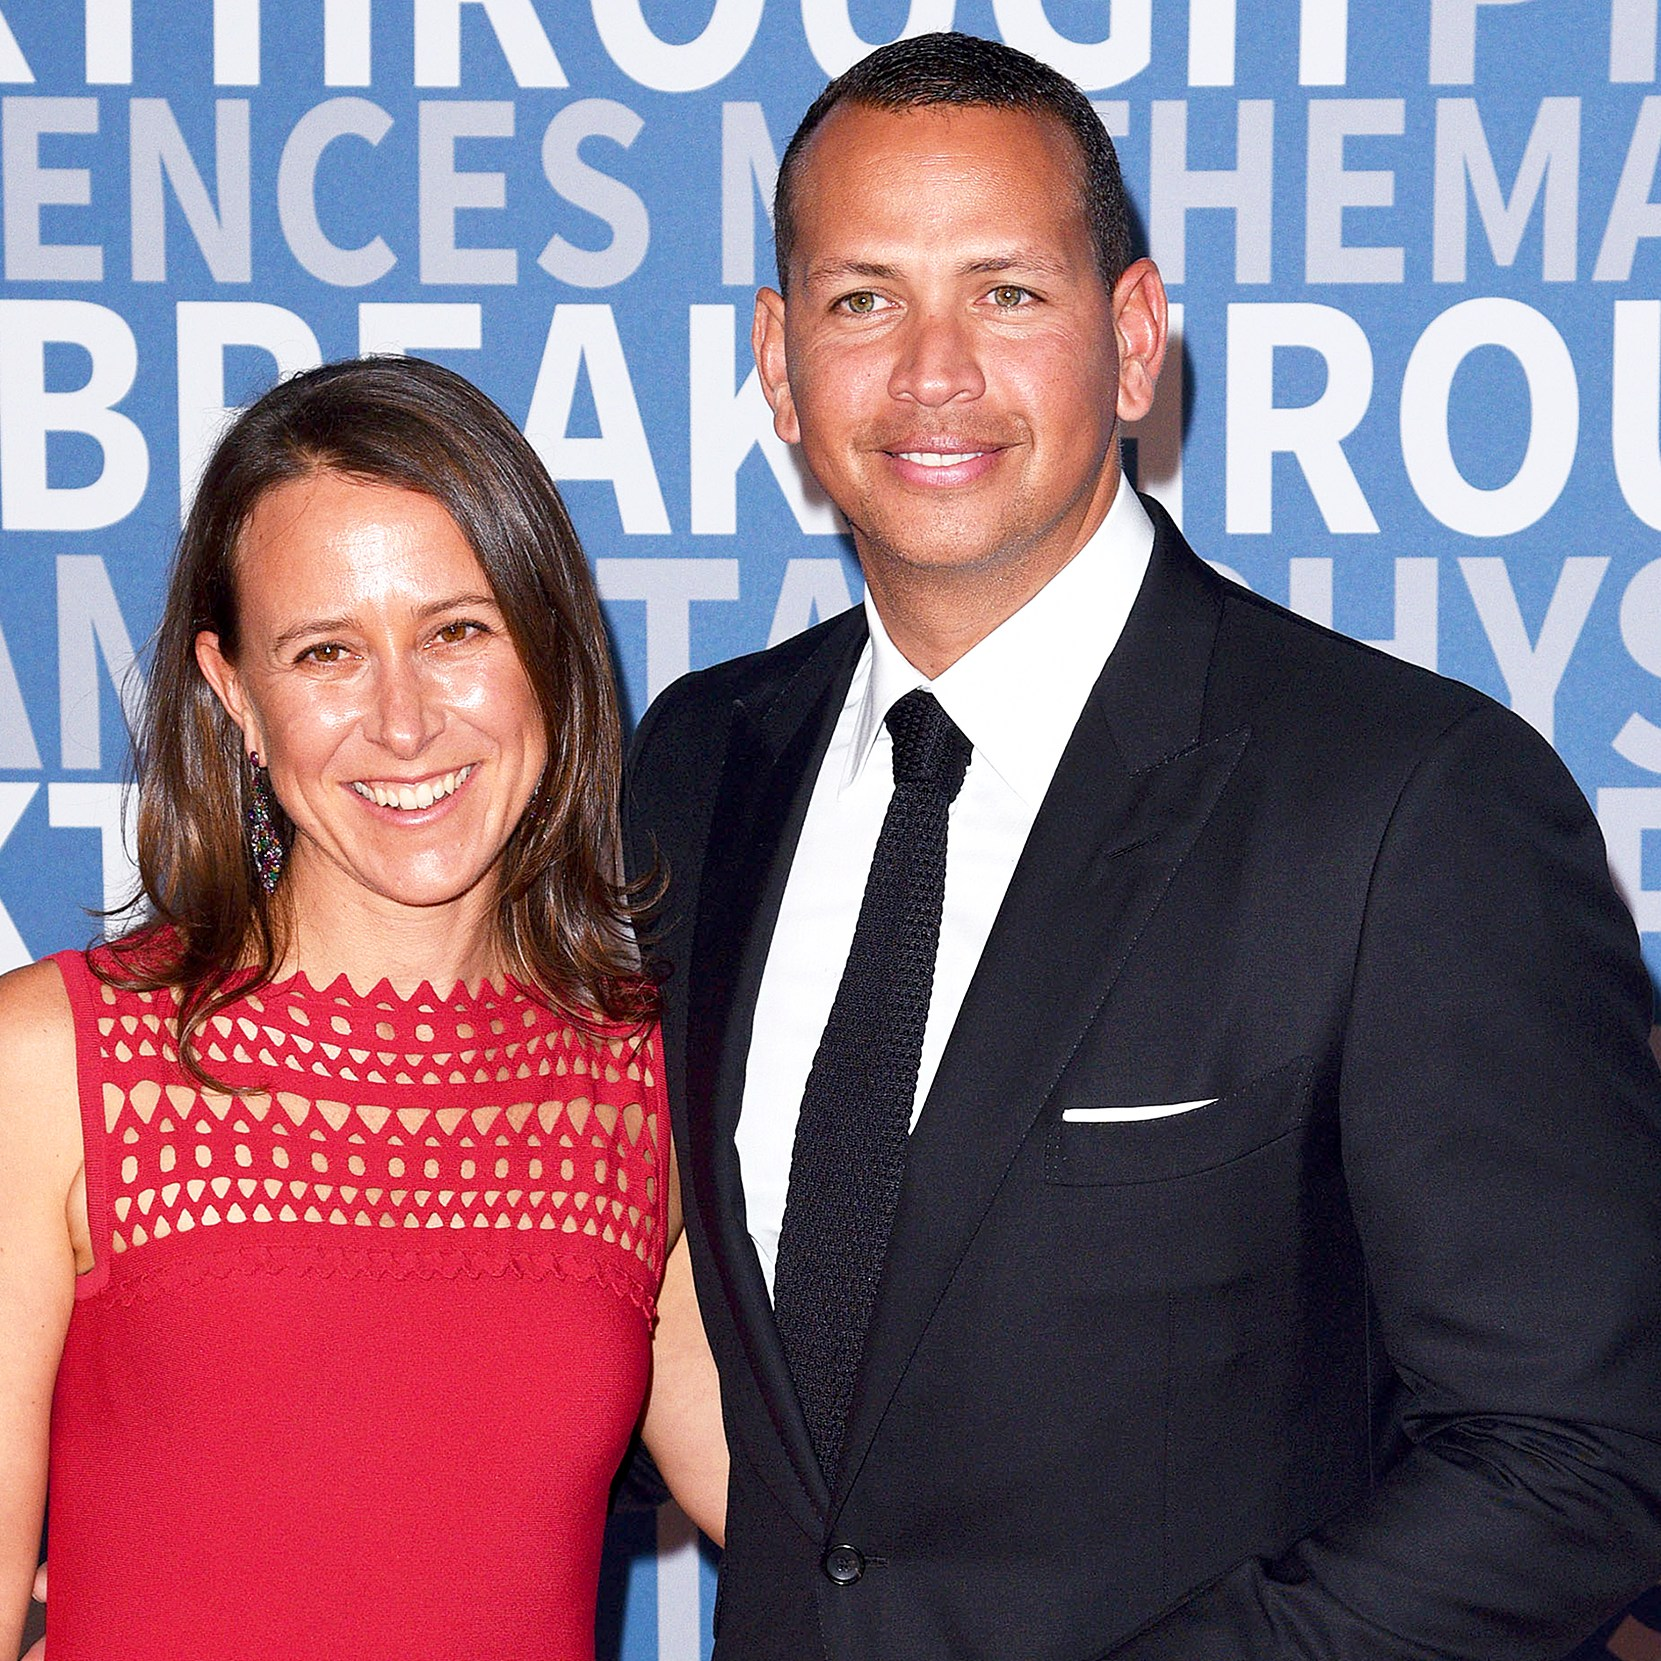 Anne Wojcicki and Alex Rodriguez attend Breakthrough Prize at NASA Ames Research Center in Mountain View, California.